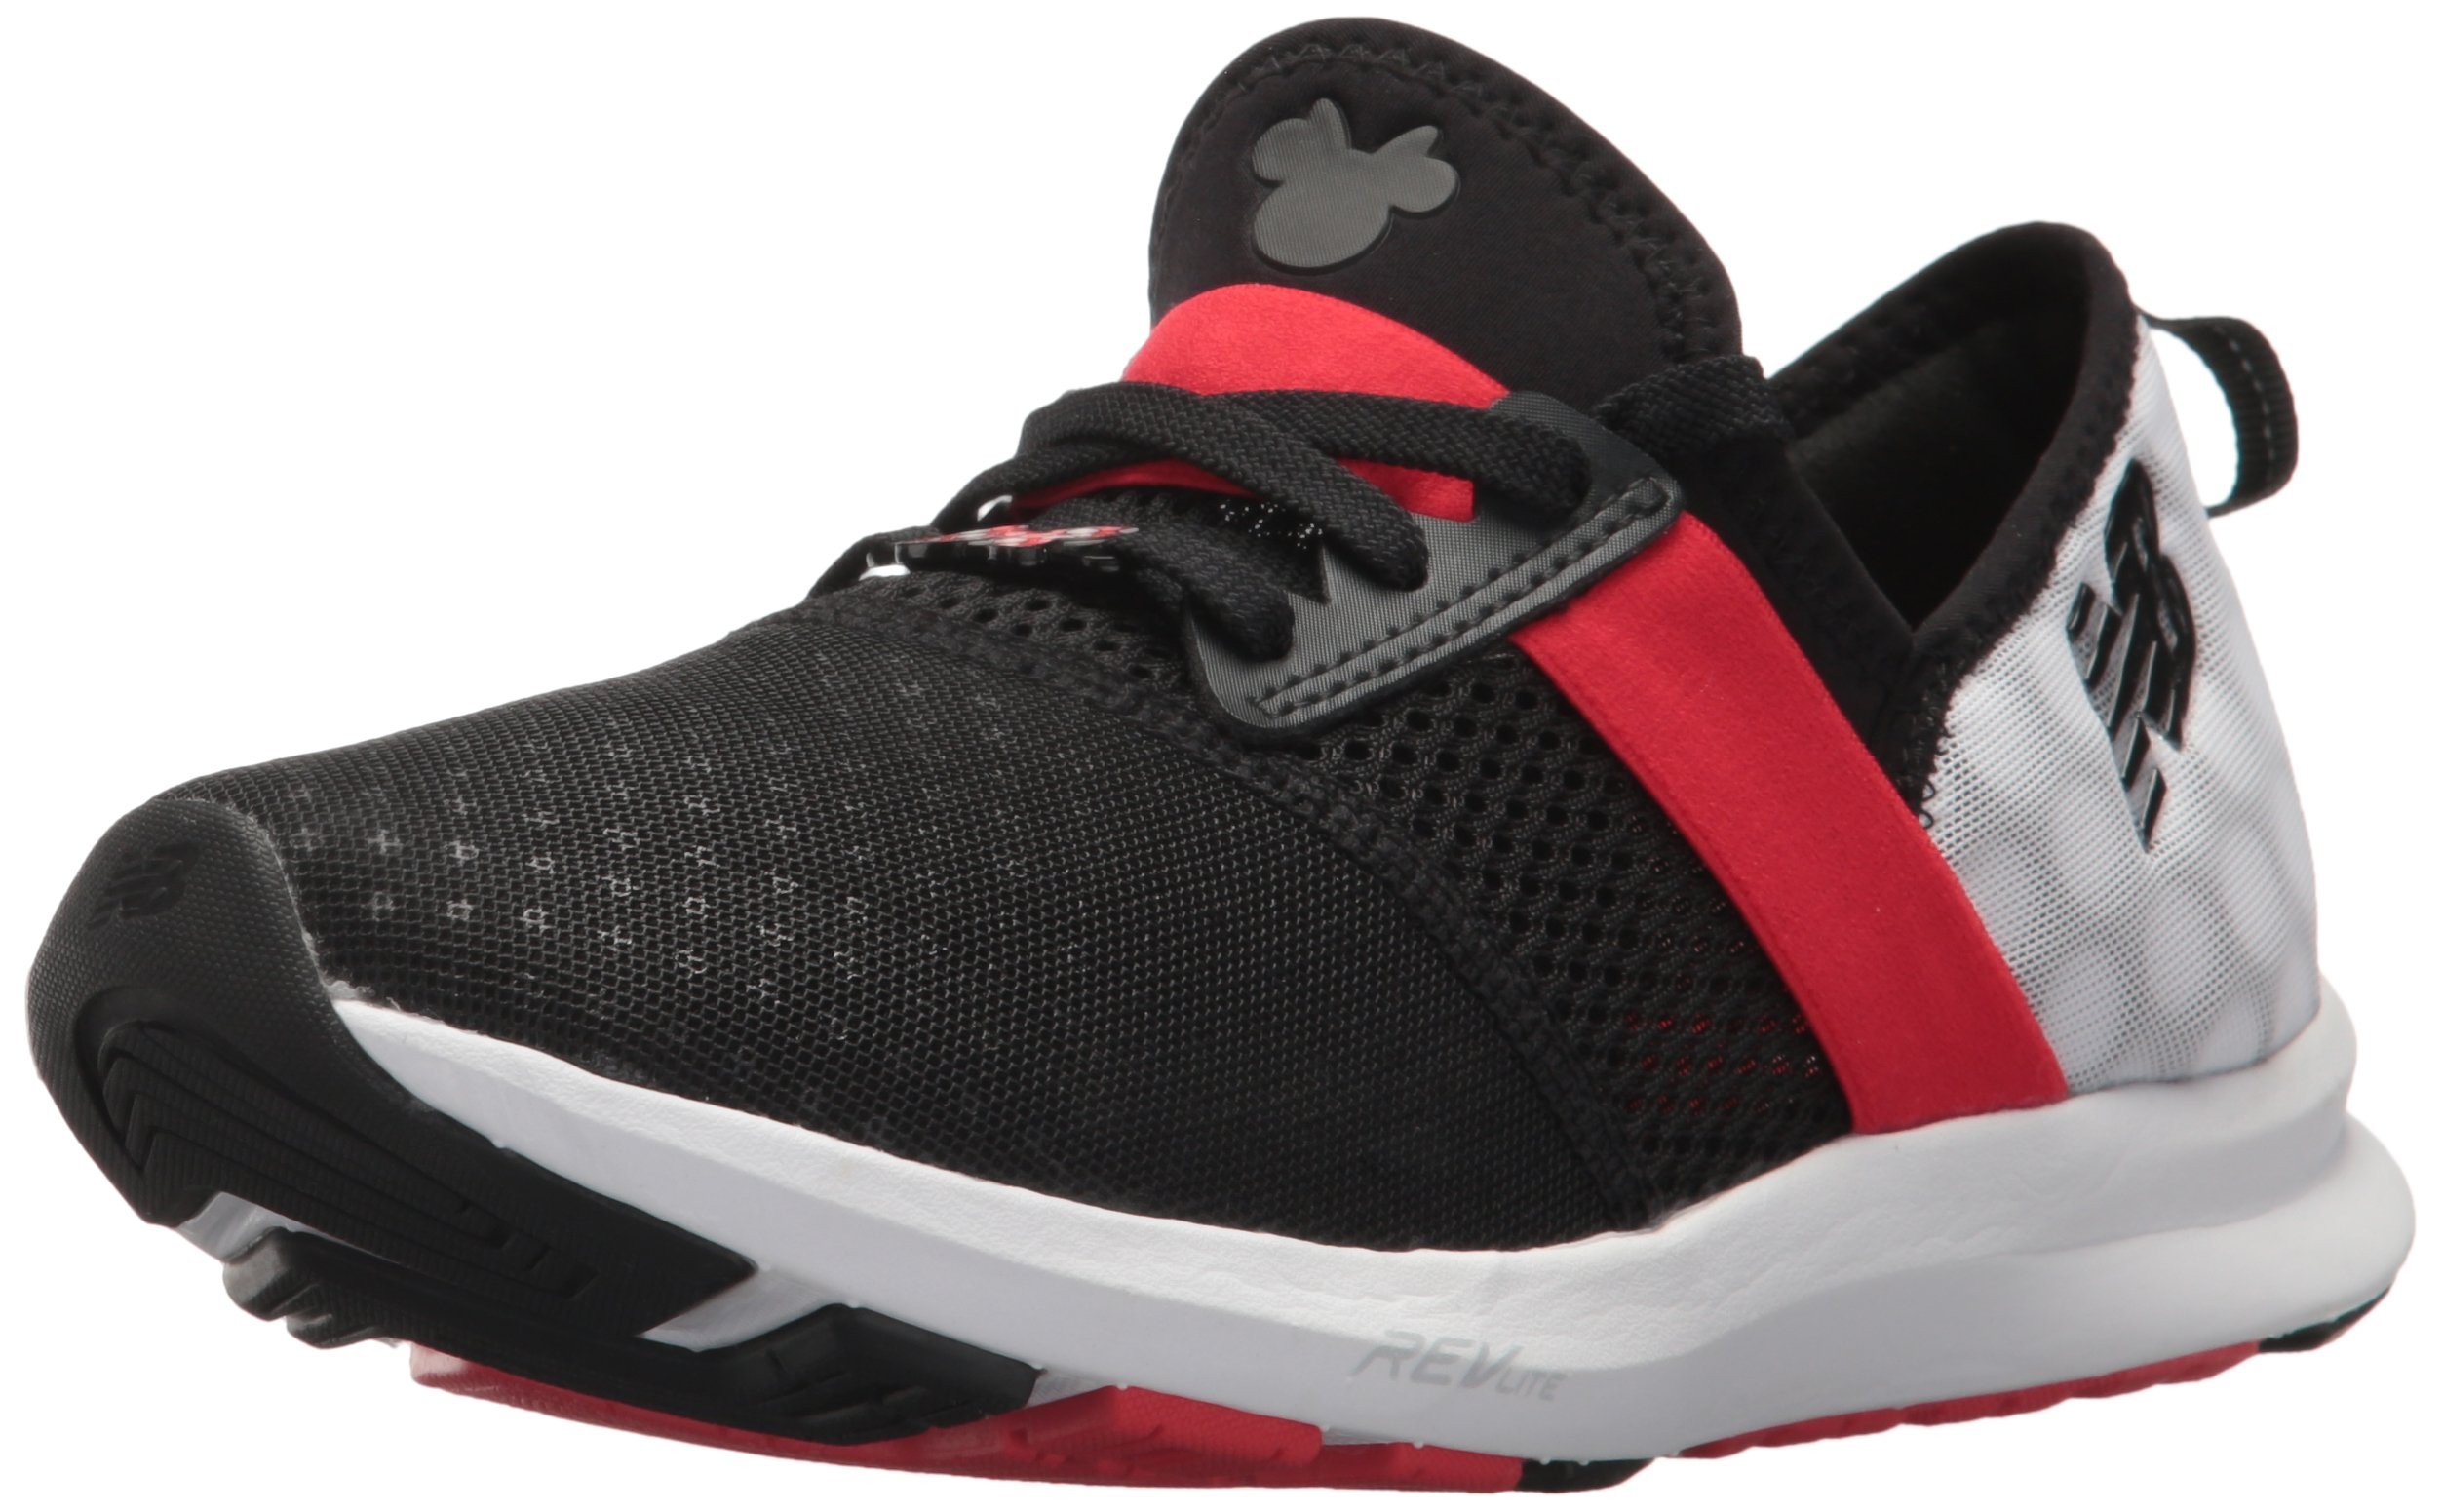 New Balance Women's Nergize V1 Fuelcore Disney Cross Trainer, Black/Red, 85 B US by New Balance (Image #1)